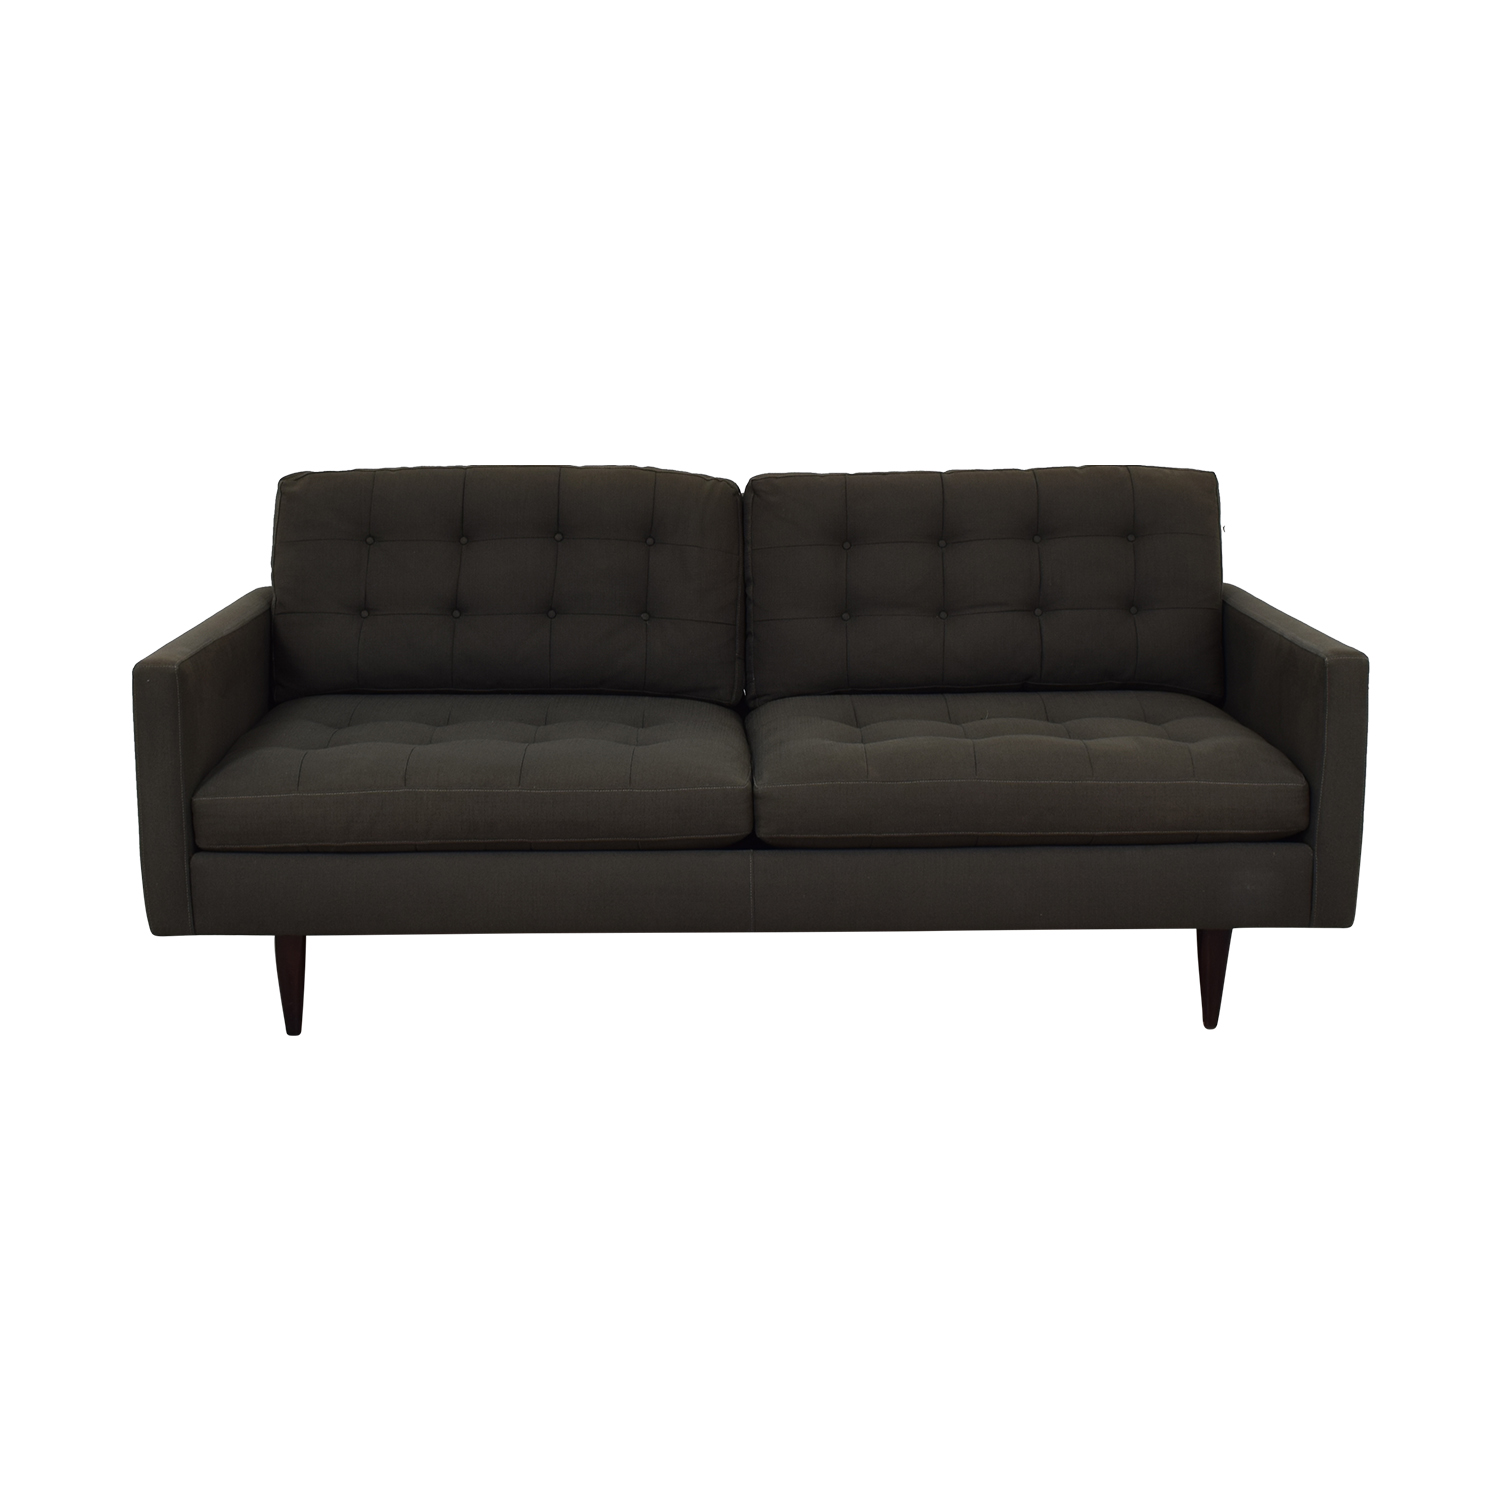 crate and barrel lounge sofa pilling sophia urban barn 70 off willow sage